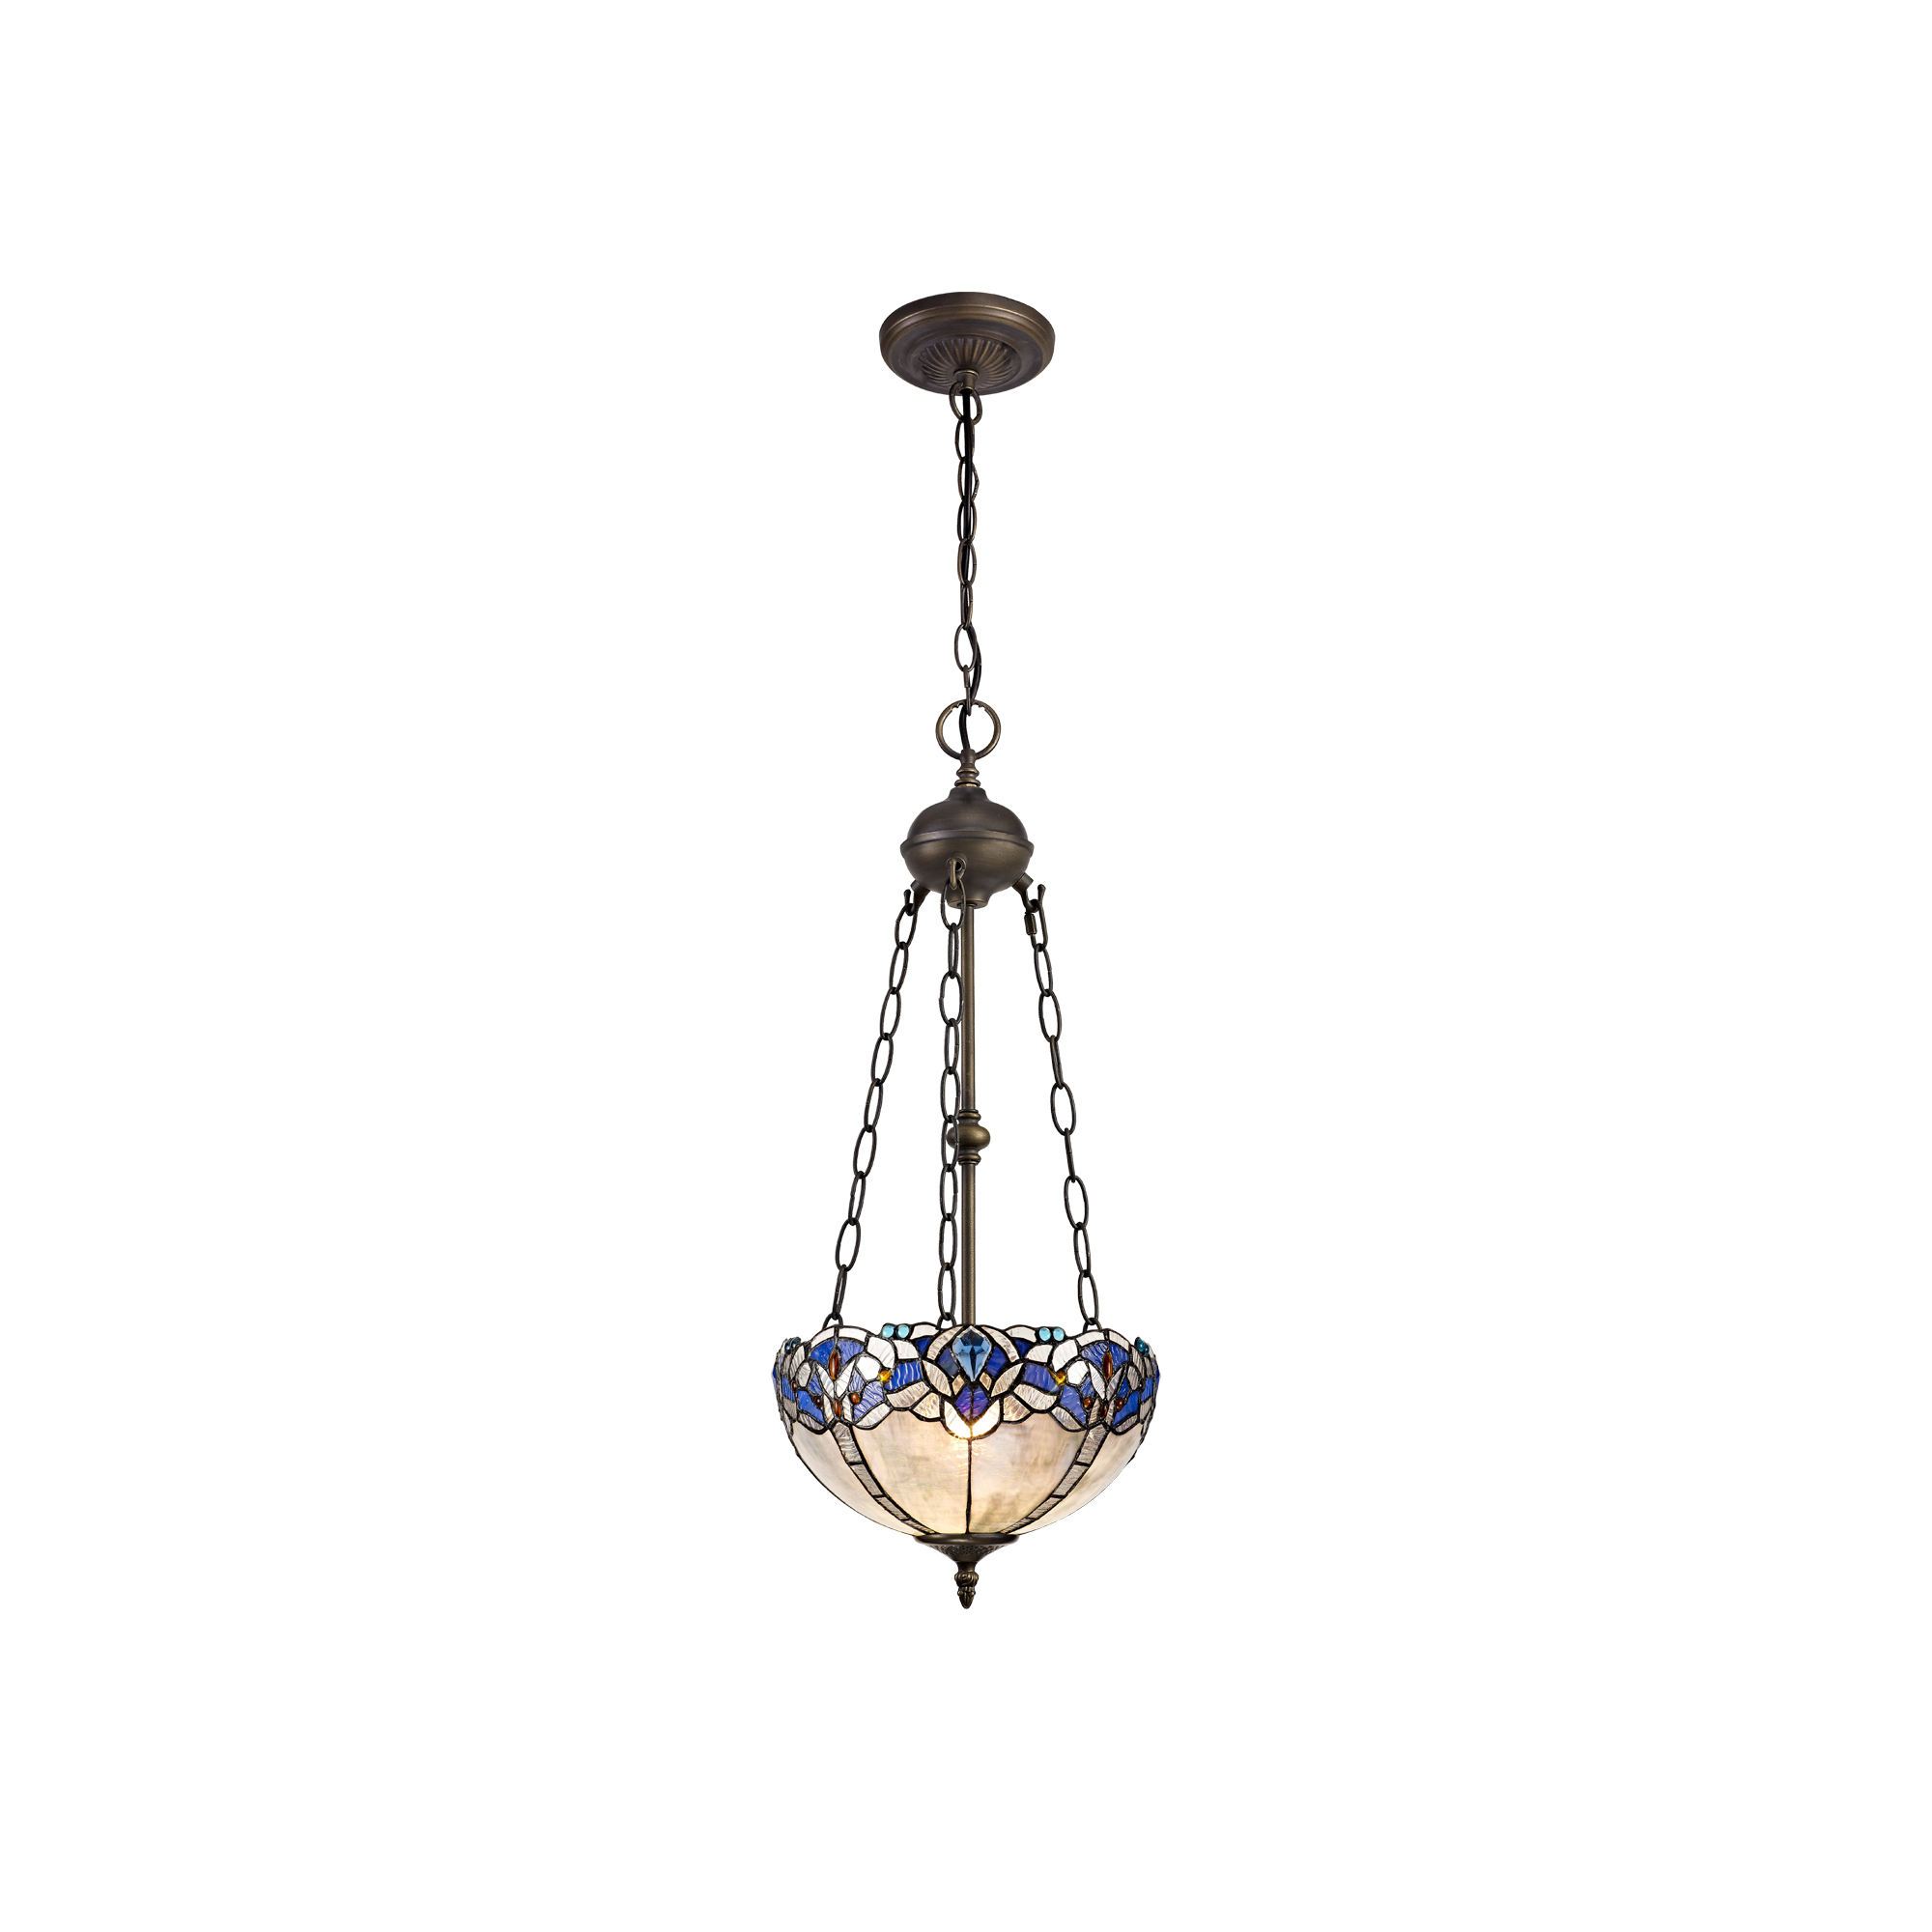 2 Light Uplighter Pendant E27 With 30cm Tiffany Shade, Blue/Clear Crystal/Aged Antique Brass